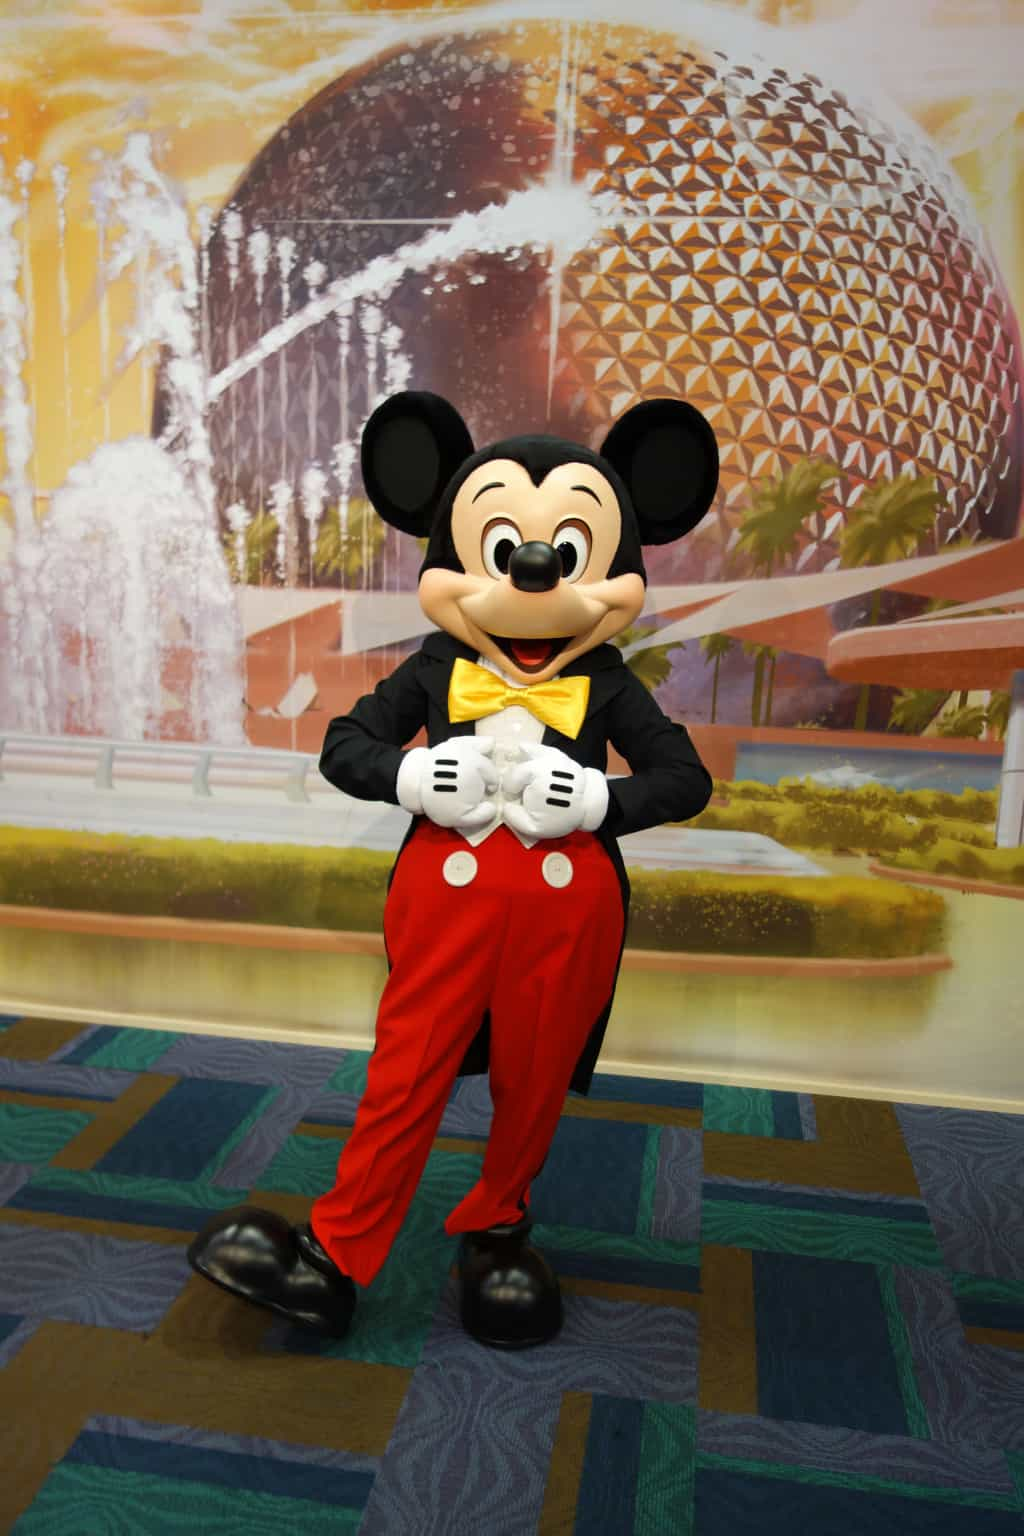 Mickey Mouse in Epcot | KennythePirate.com